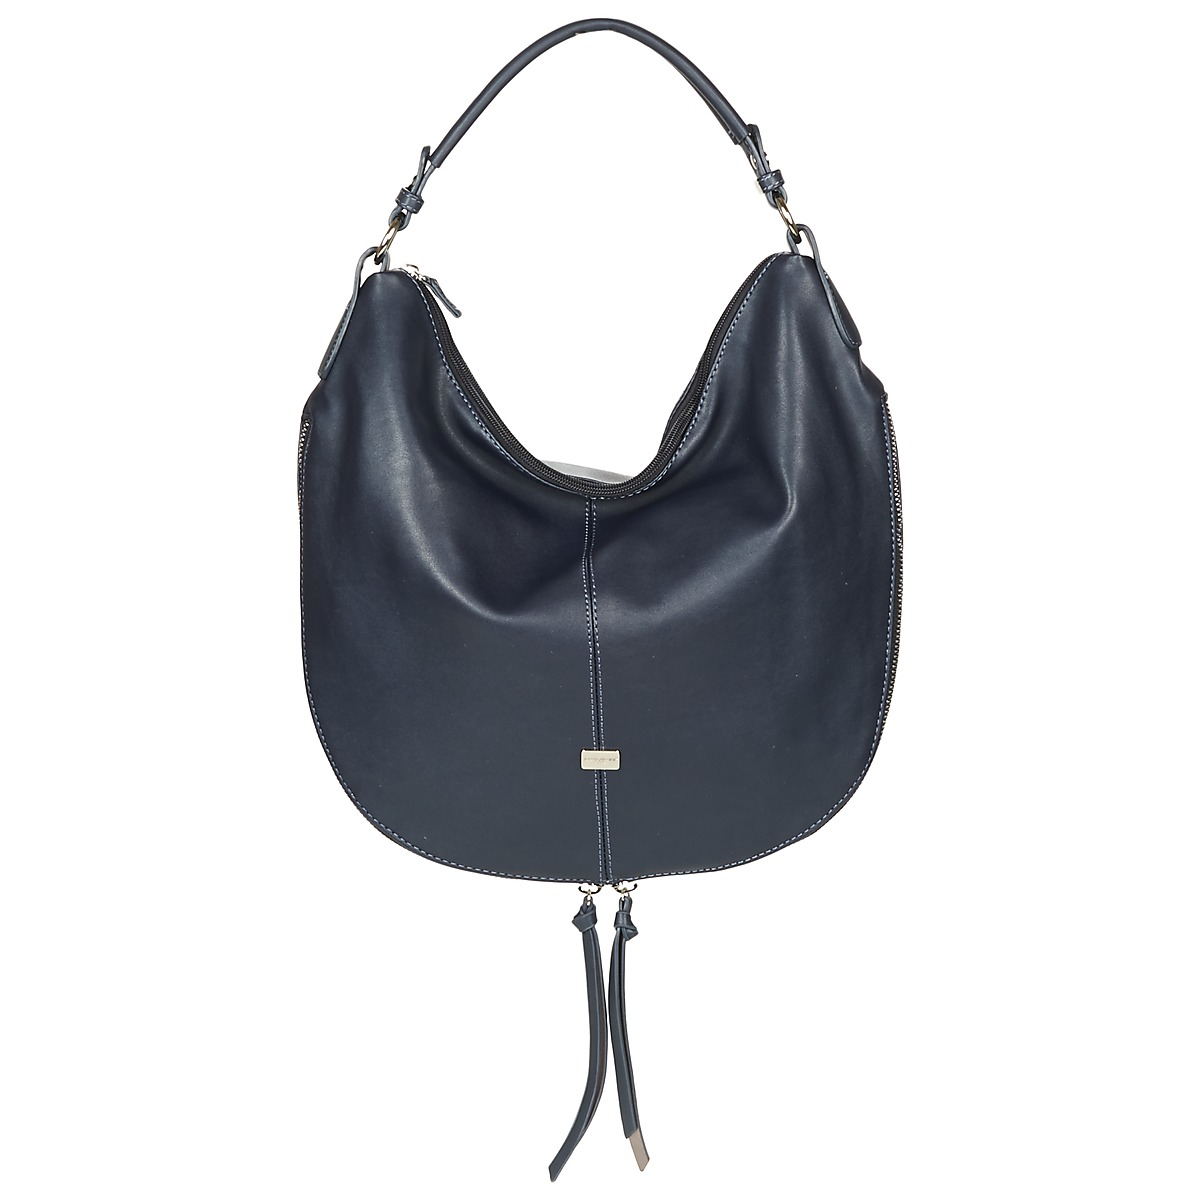 Borsa a spalla donna David Jones  -  Blu